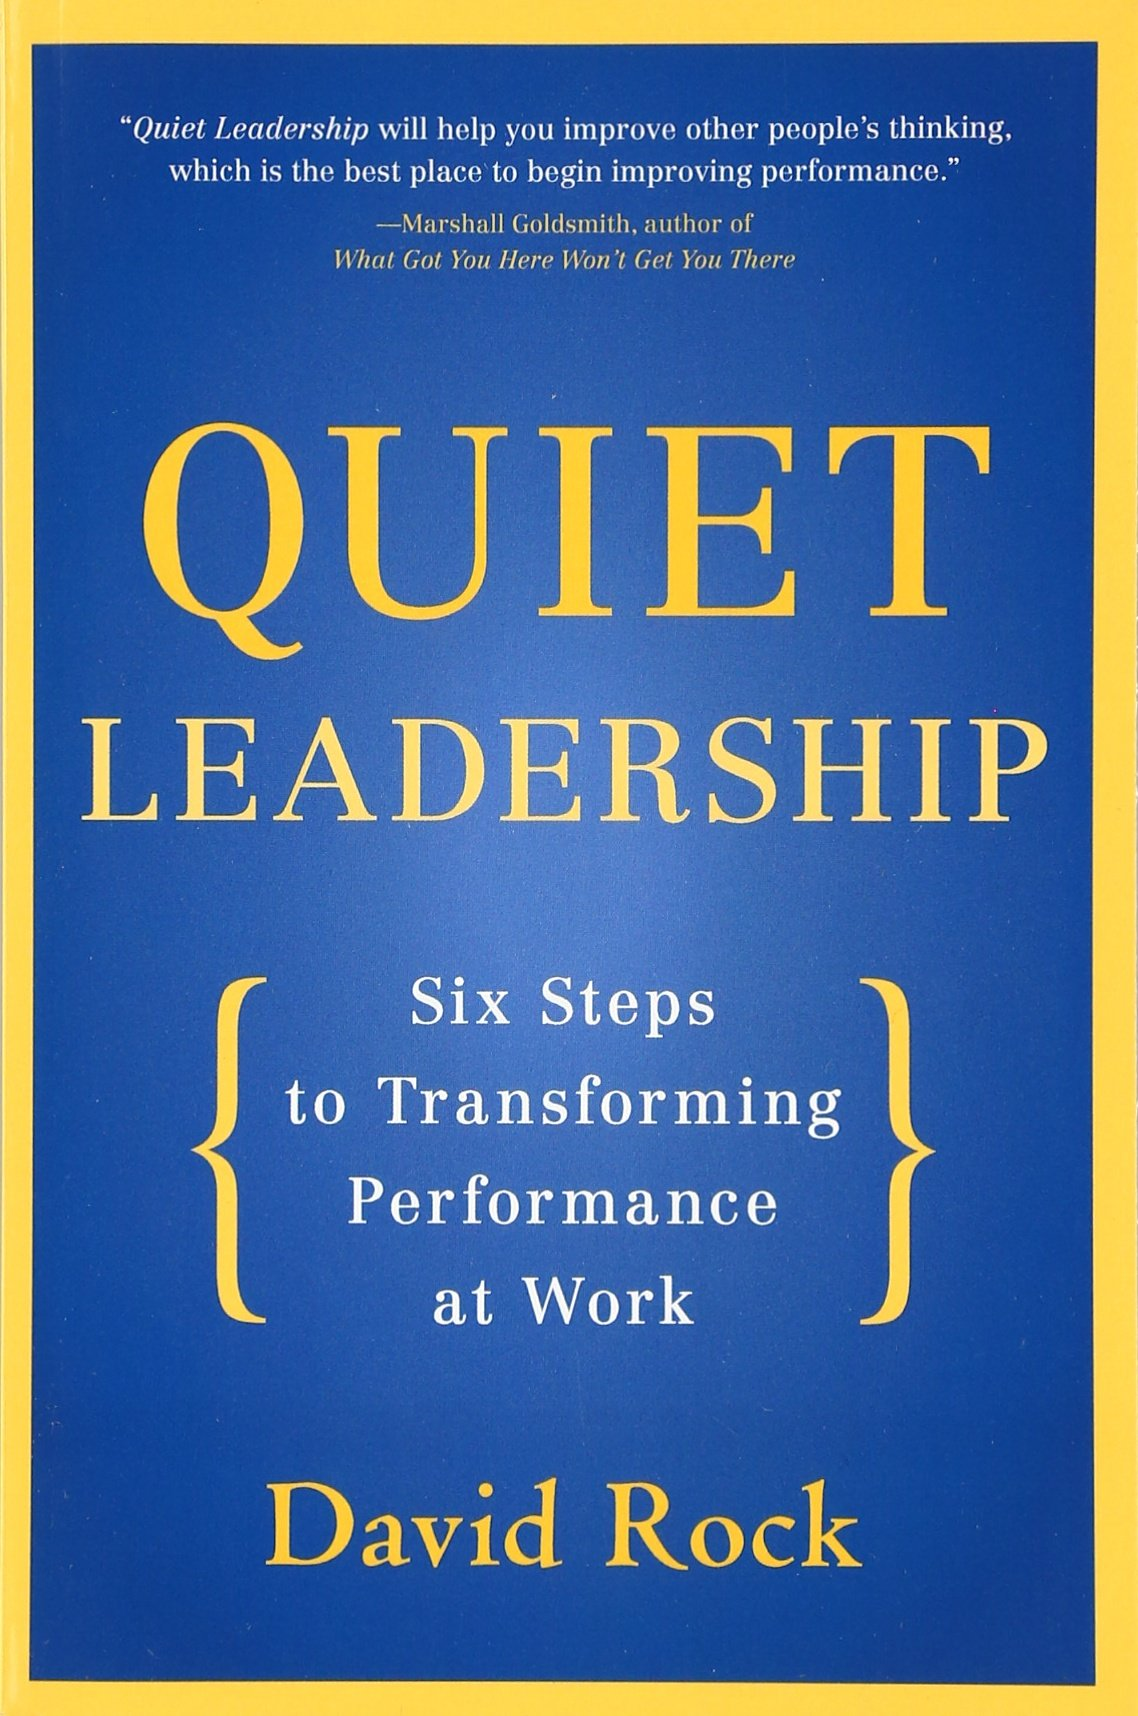 Quiet Leadership Steps Transforming Performance product image